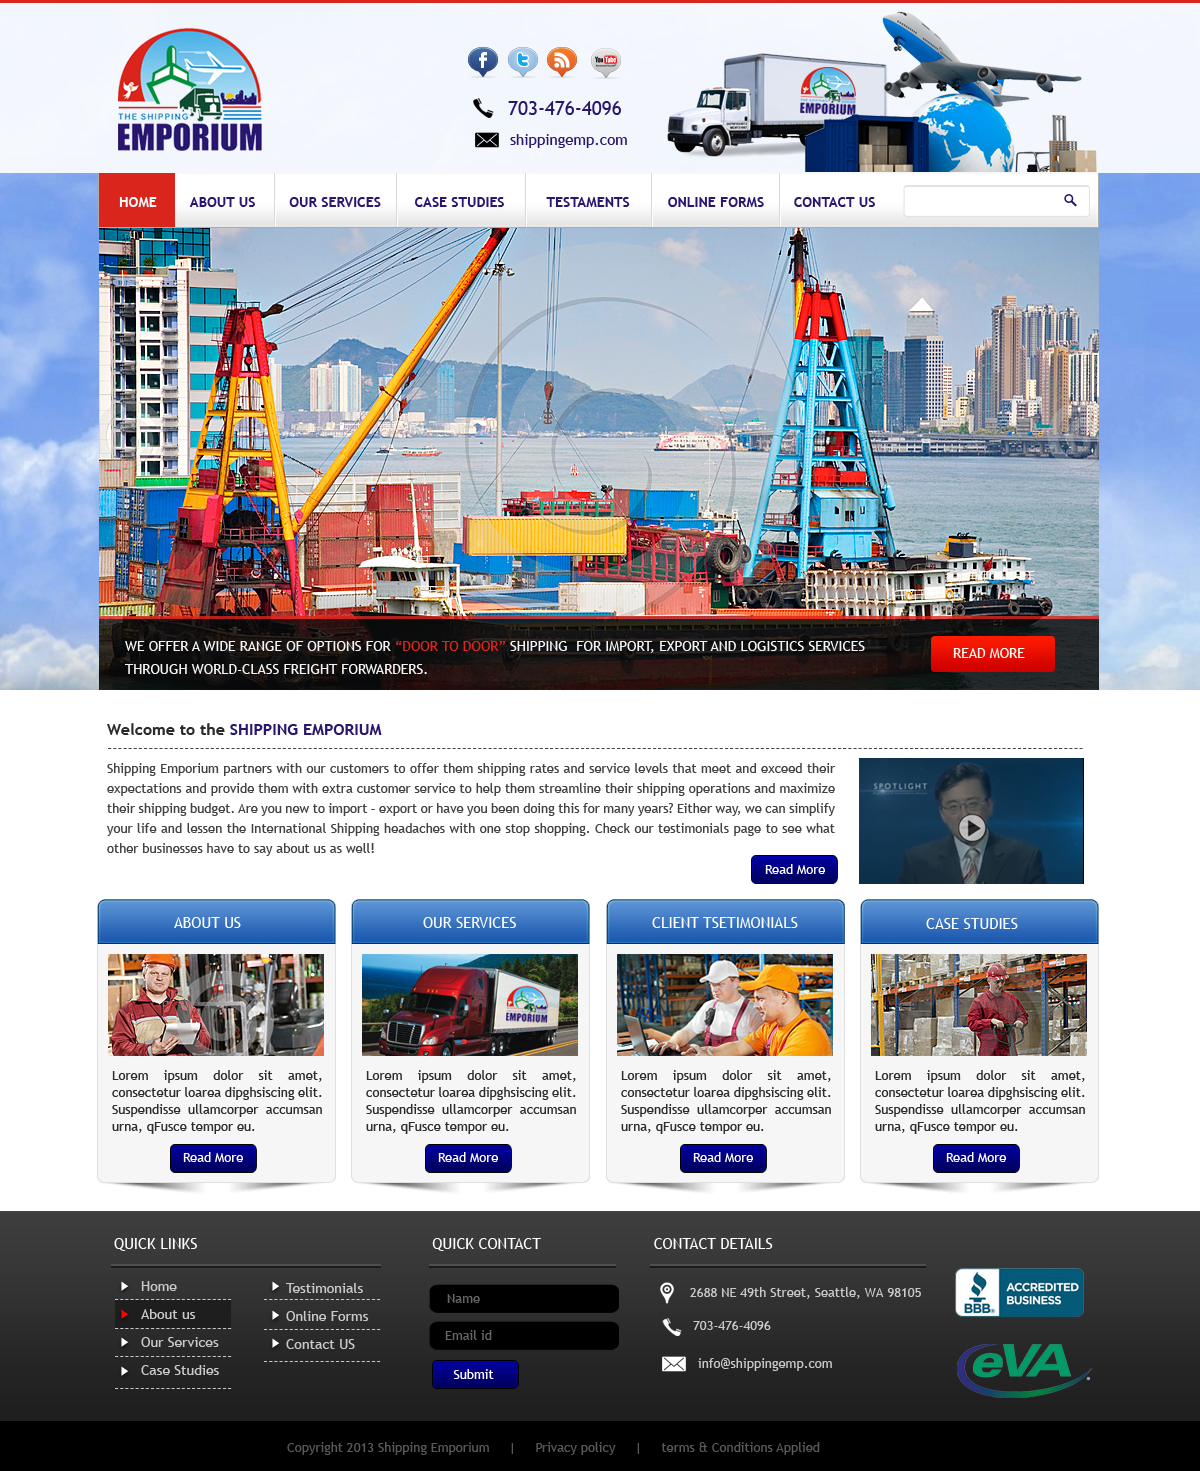 Web Page Design by Vishwa Km - Entry No. 18 in the Web Page Design Contest Artistic Web Page Design for The Shipping Emporium Website.